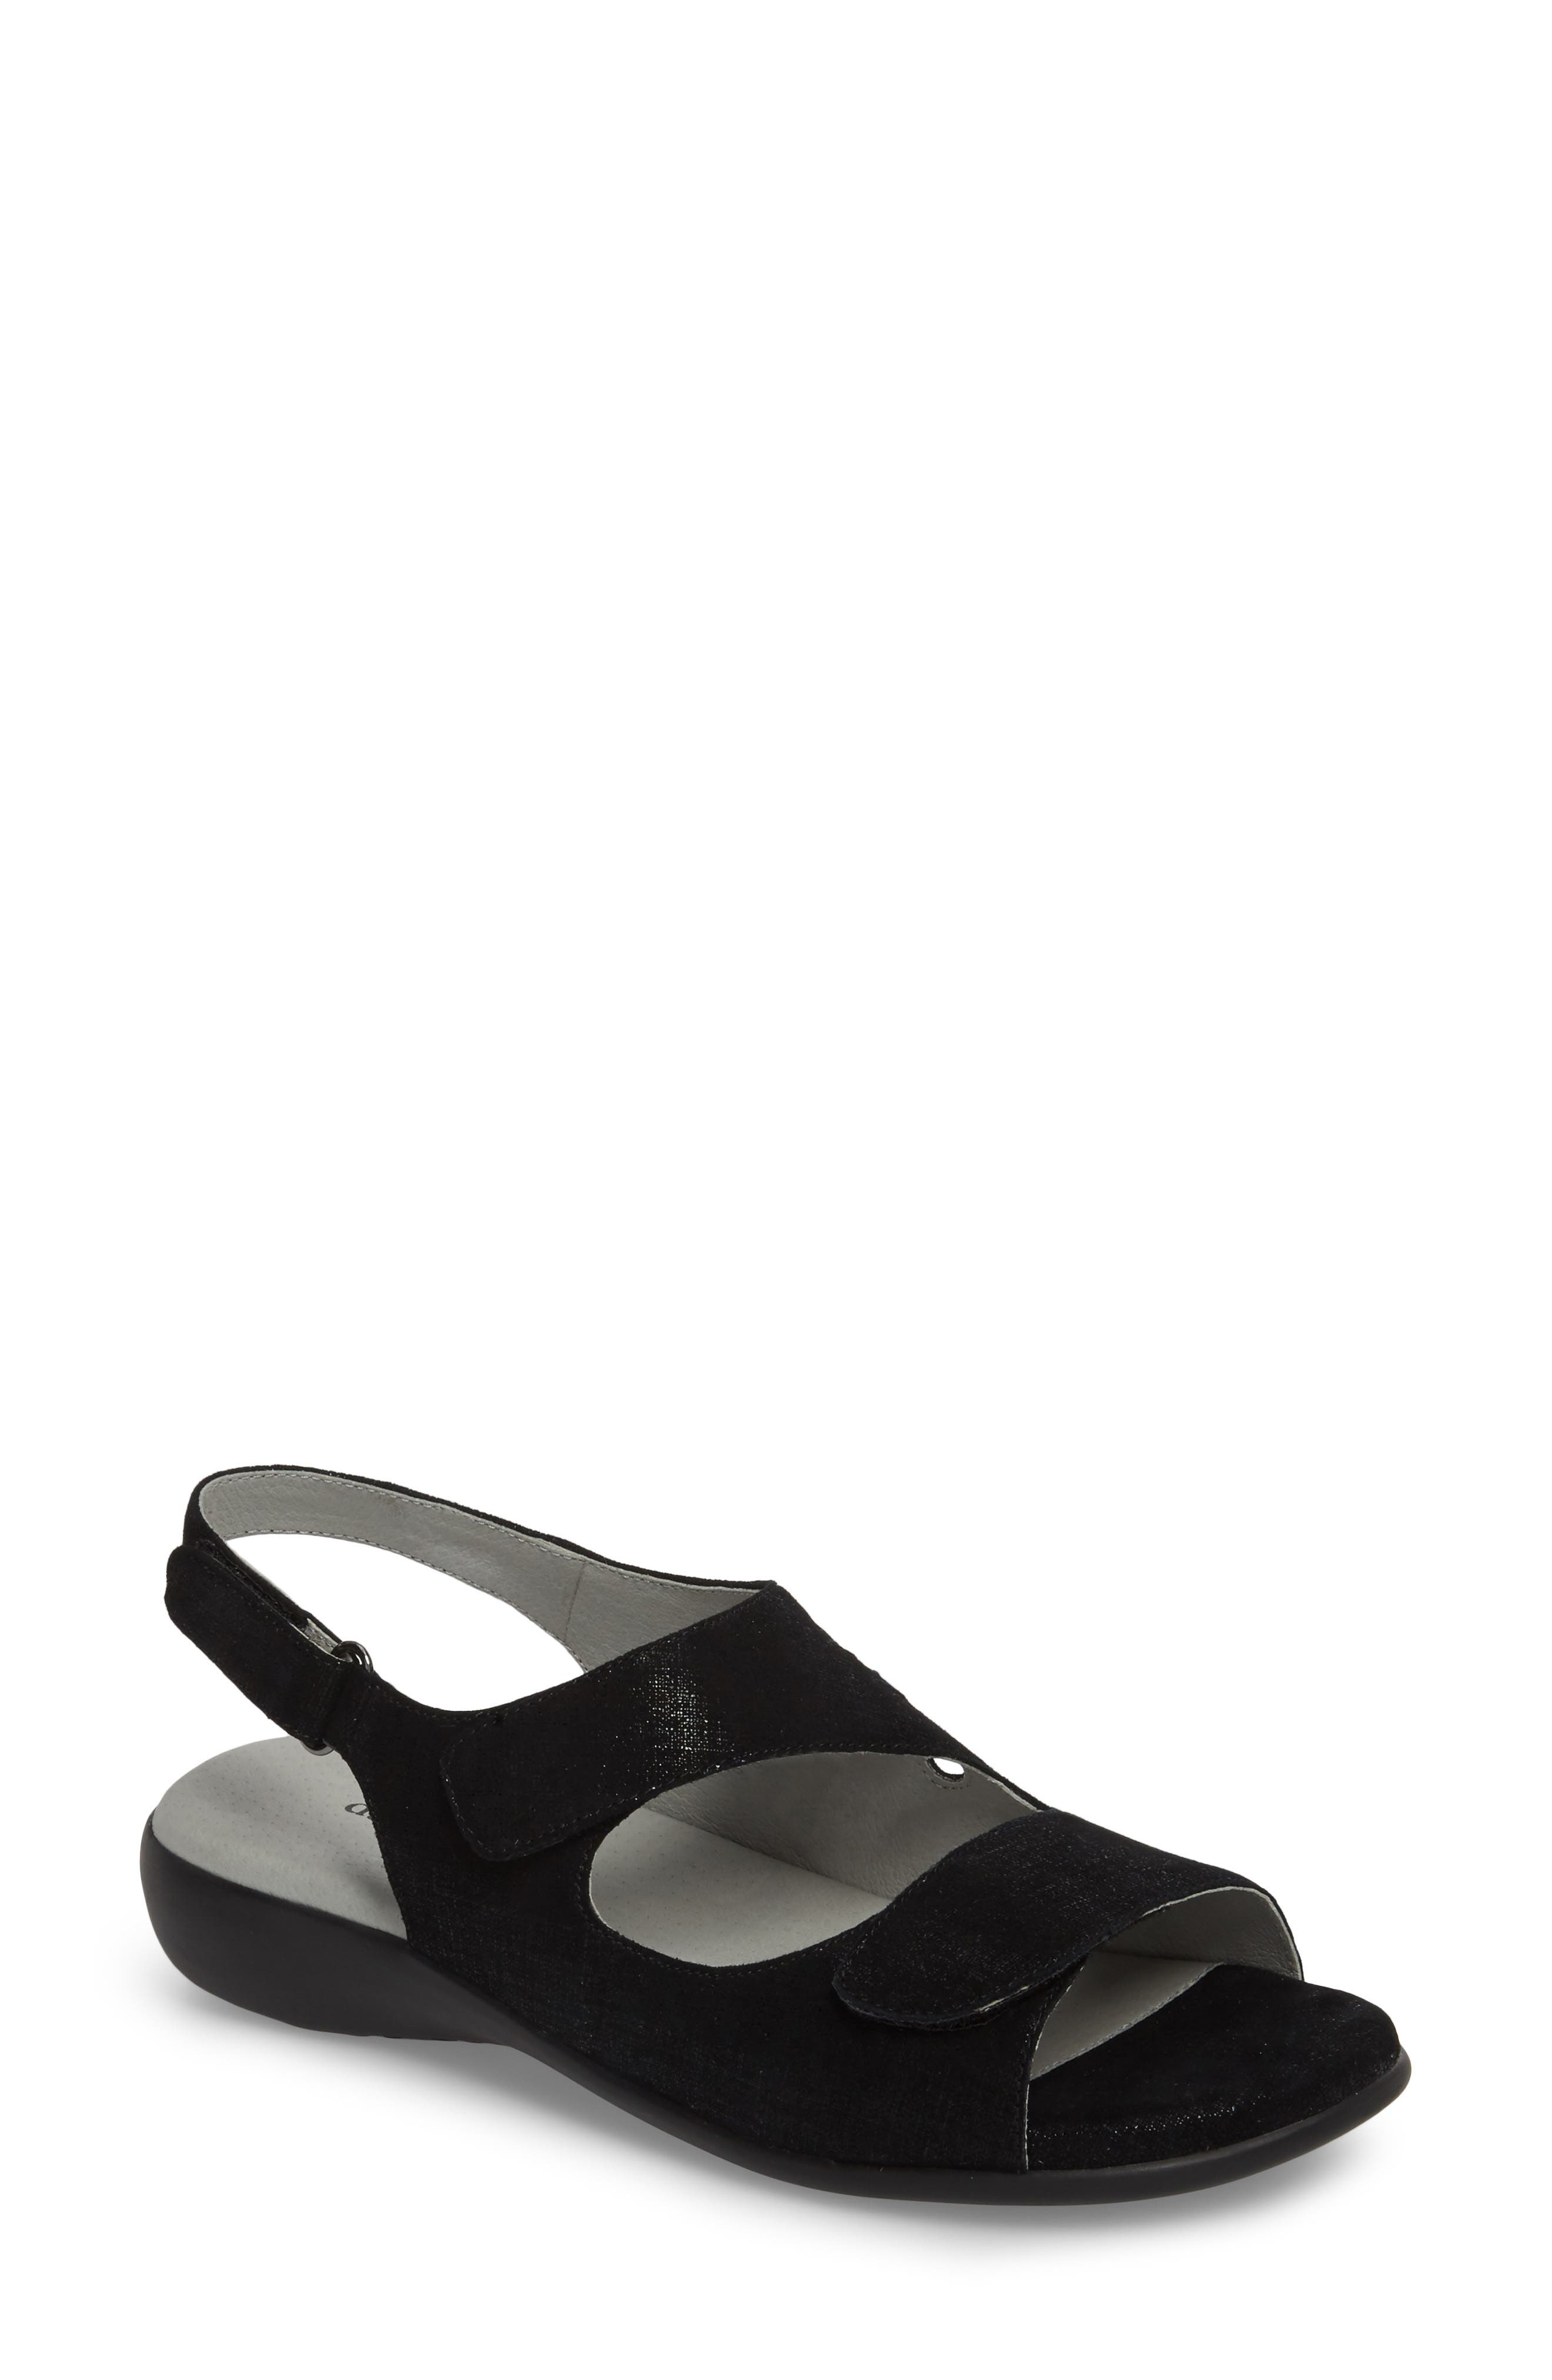 Lilly Slingback Sandal,                         Main,                         color, BLACK LEATHER